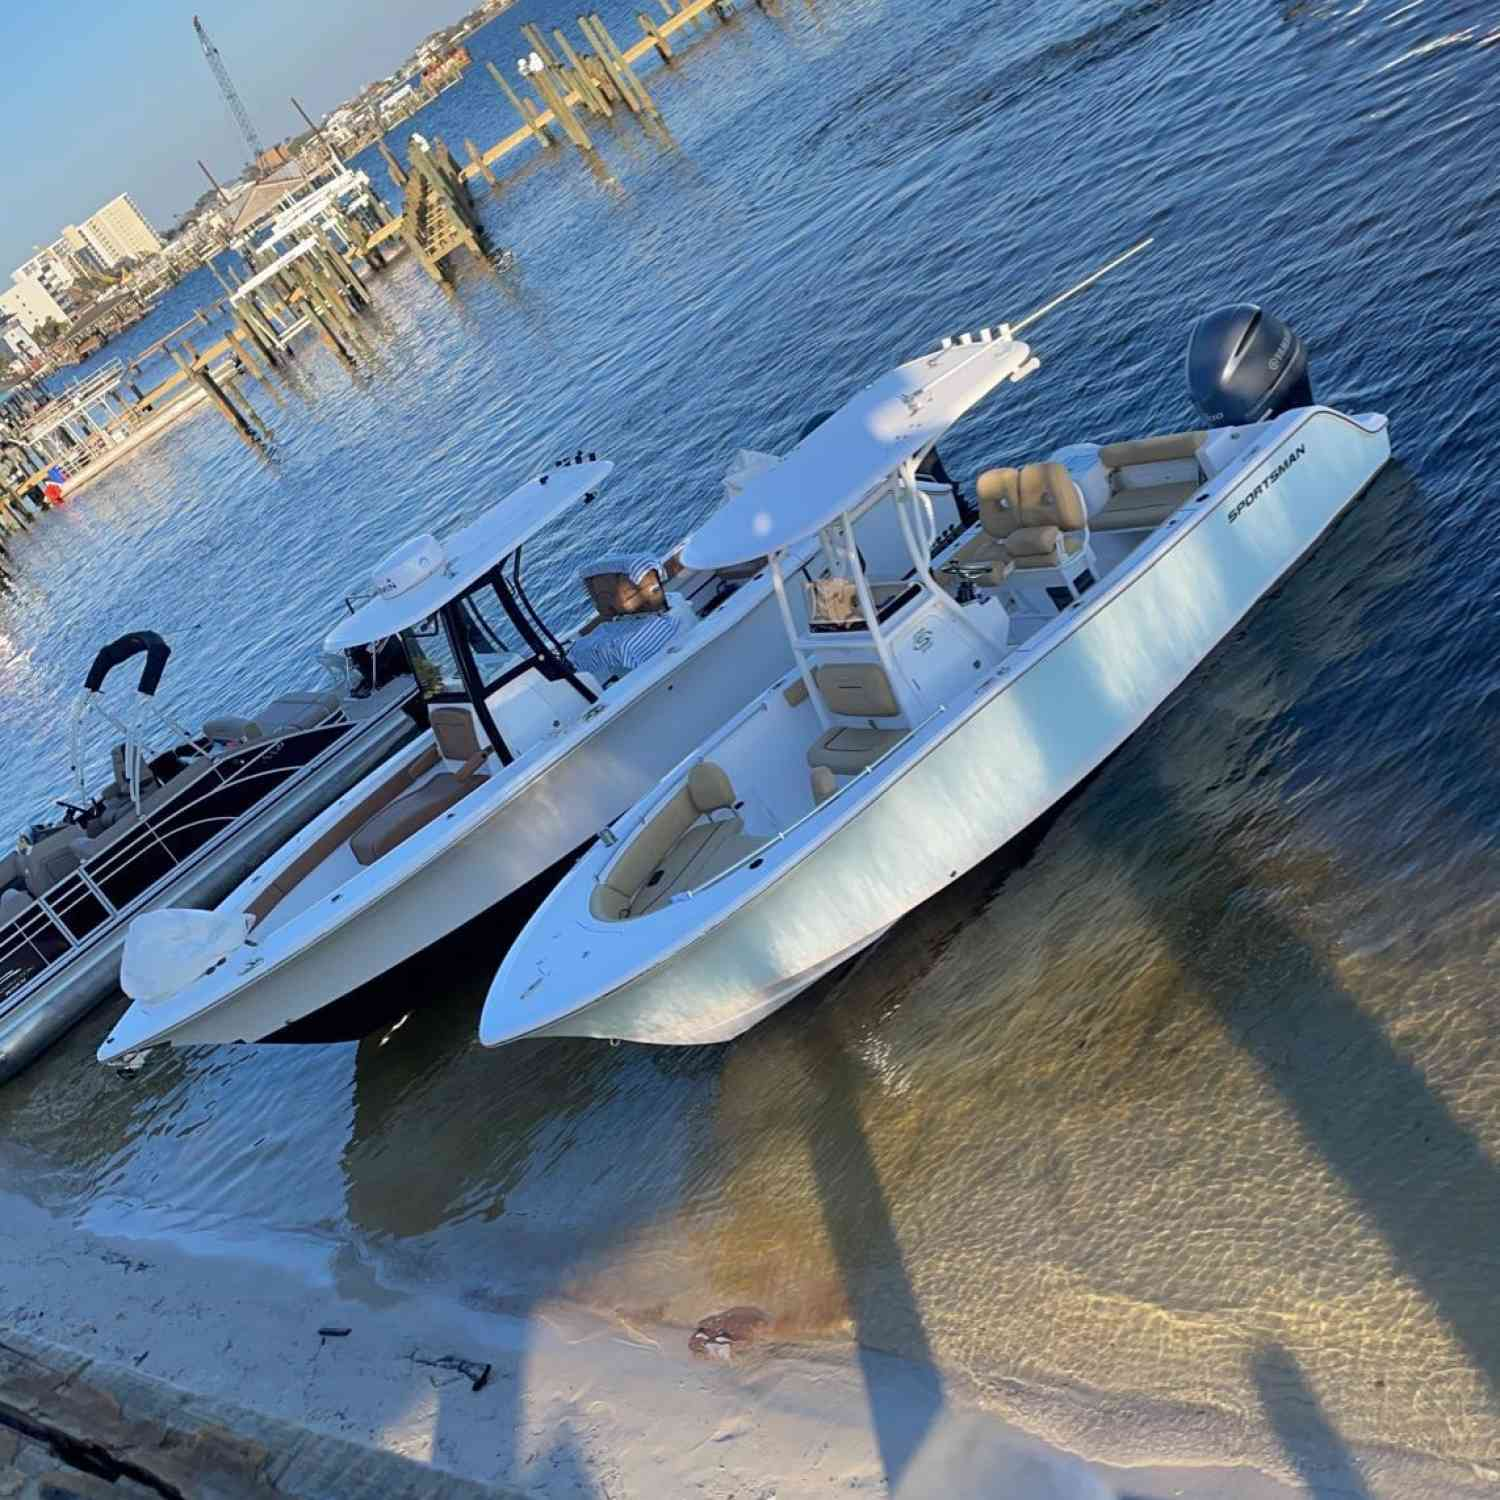 Title: Dinner time - On board their Sportsman Open 242 Center Console - Location: Orange beach Alabama. Participating in the Photo Contest #SportsmanJune2021